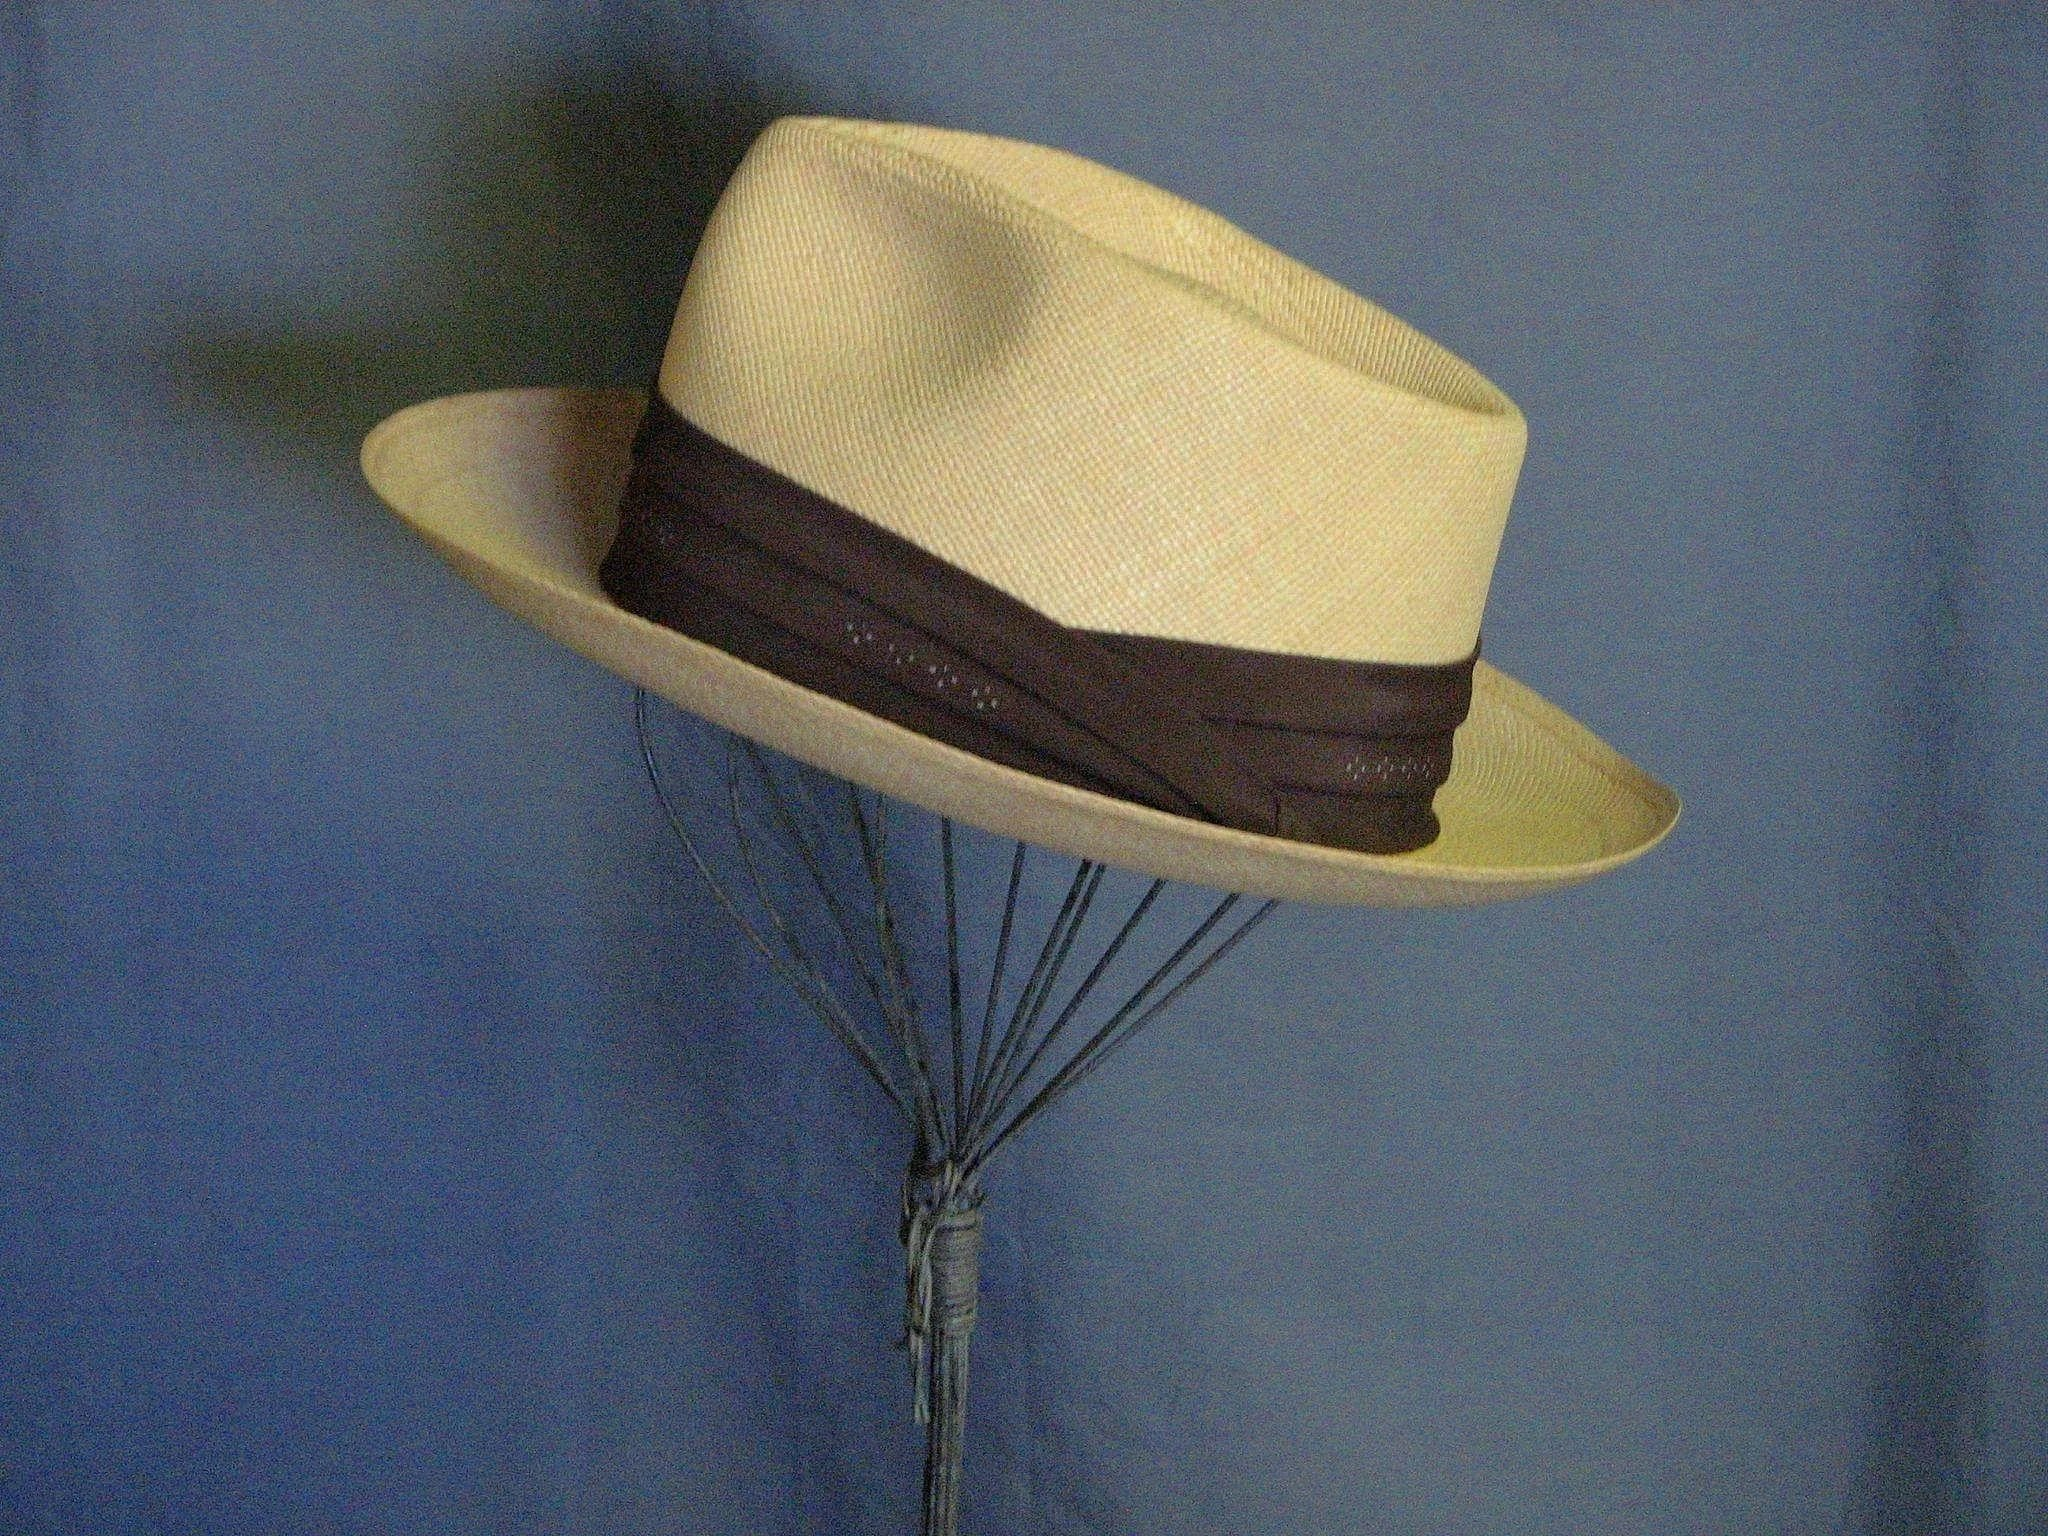 b2062e990f434 Mens Vintage Panama Straw Stetson Hat. Click to expand